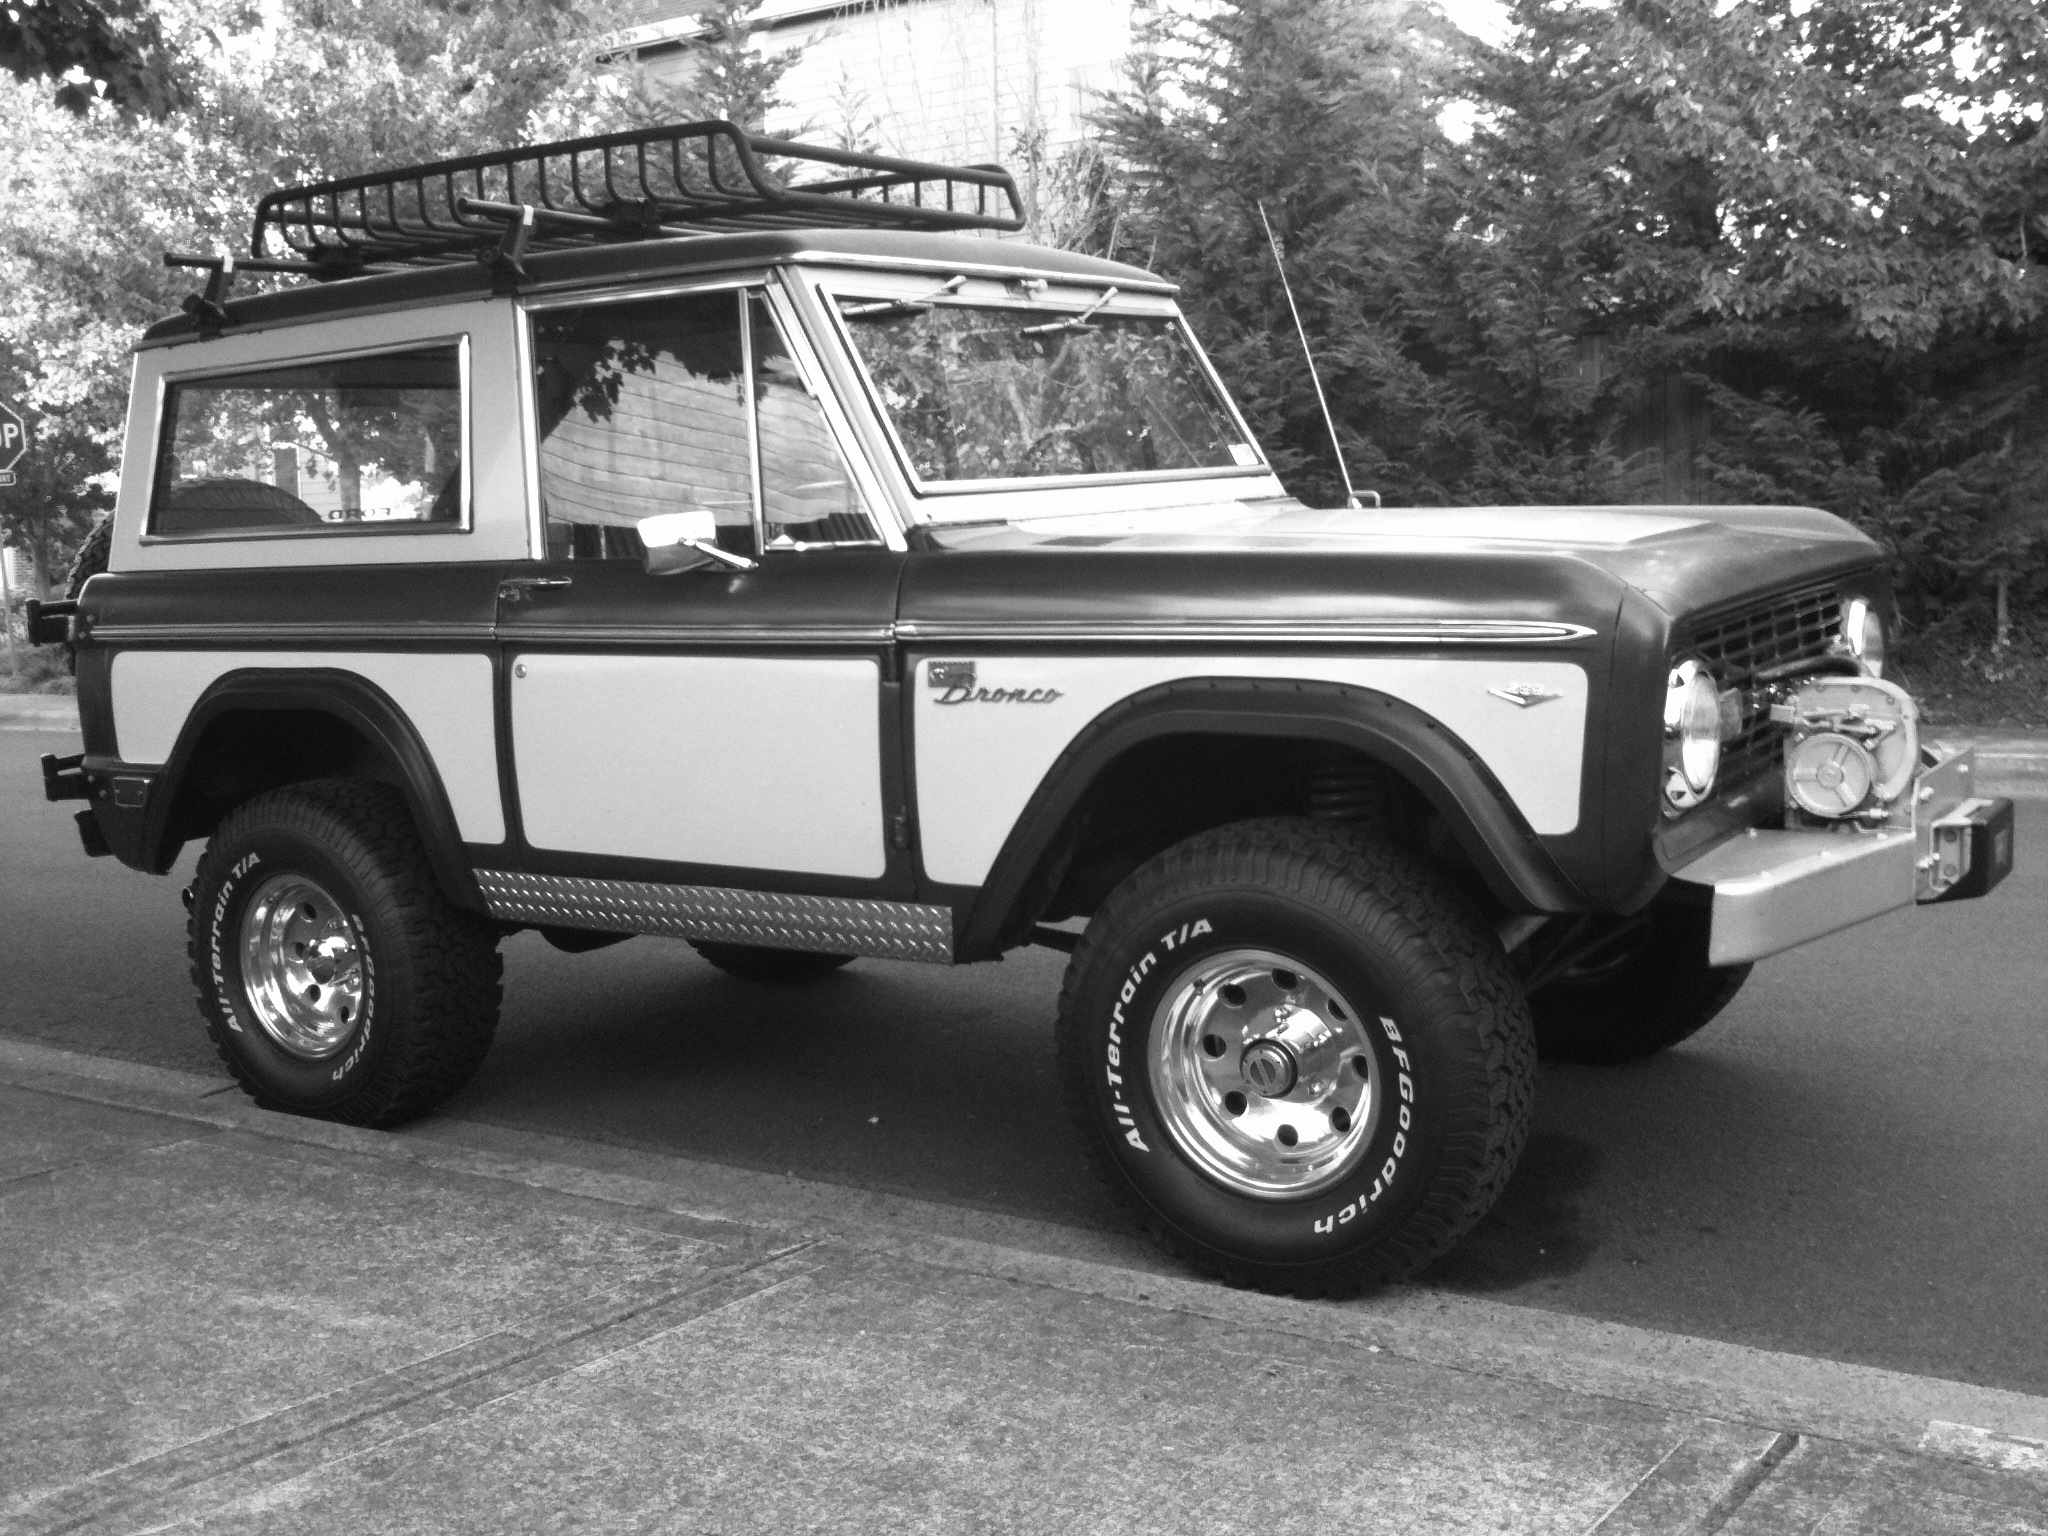 68sport 1968 Ford Bronco 5408266